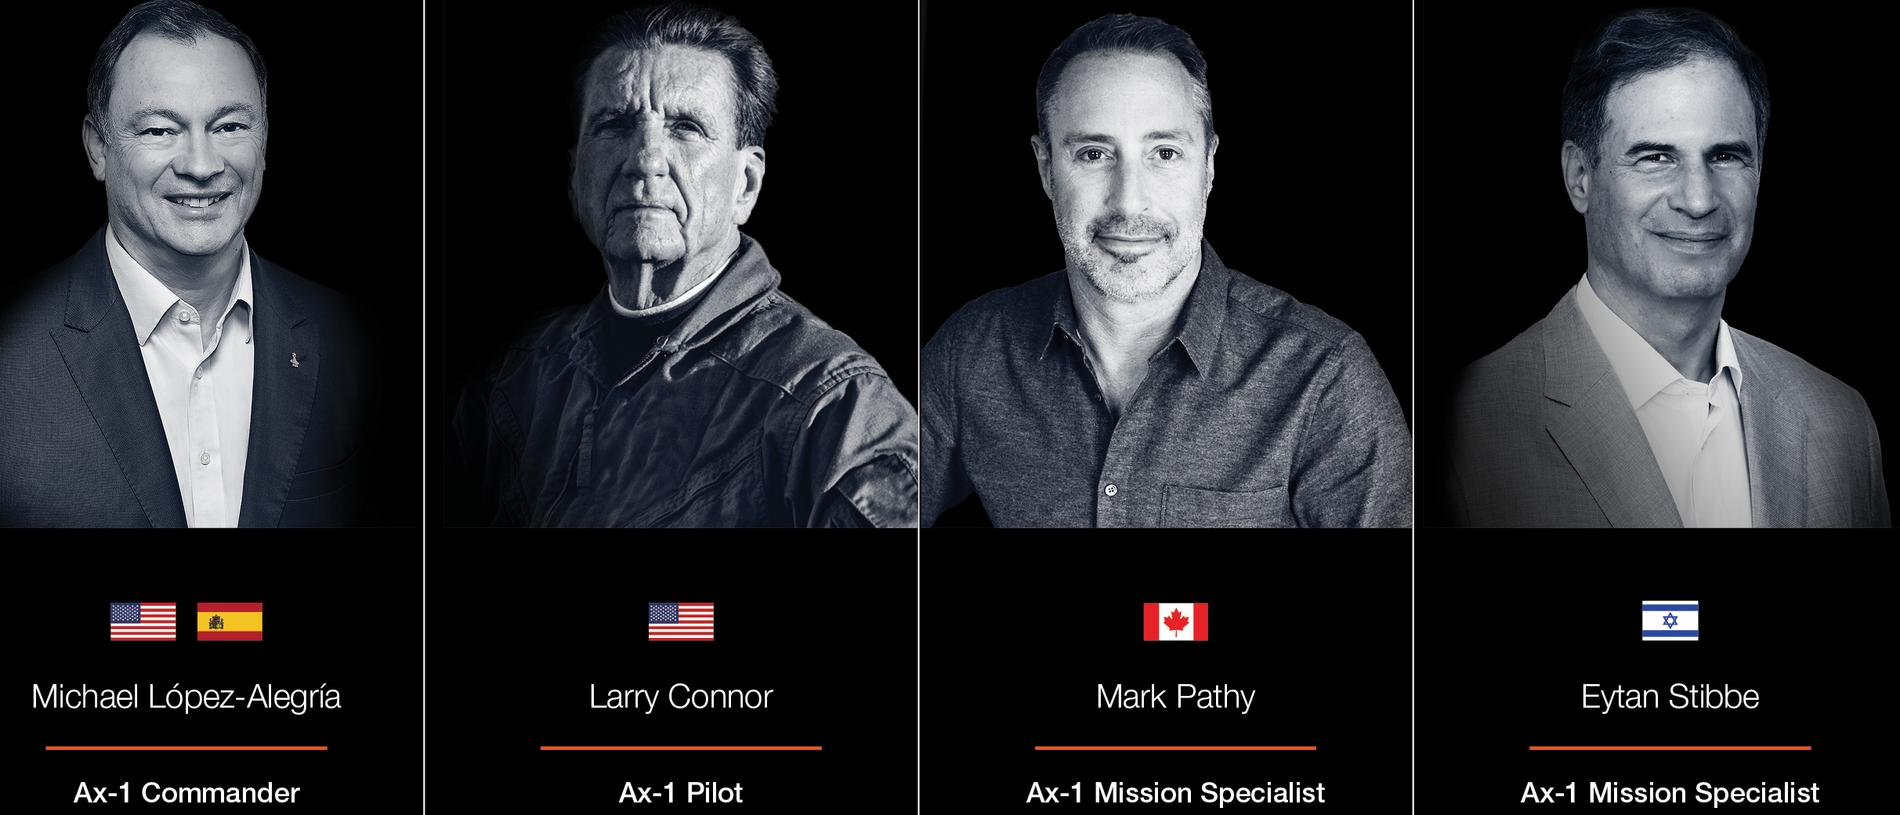 The crew for Axiom's Ax-1 mission has been announced.